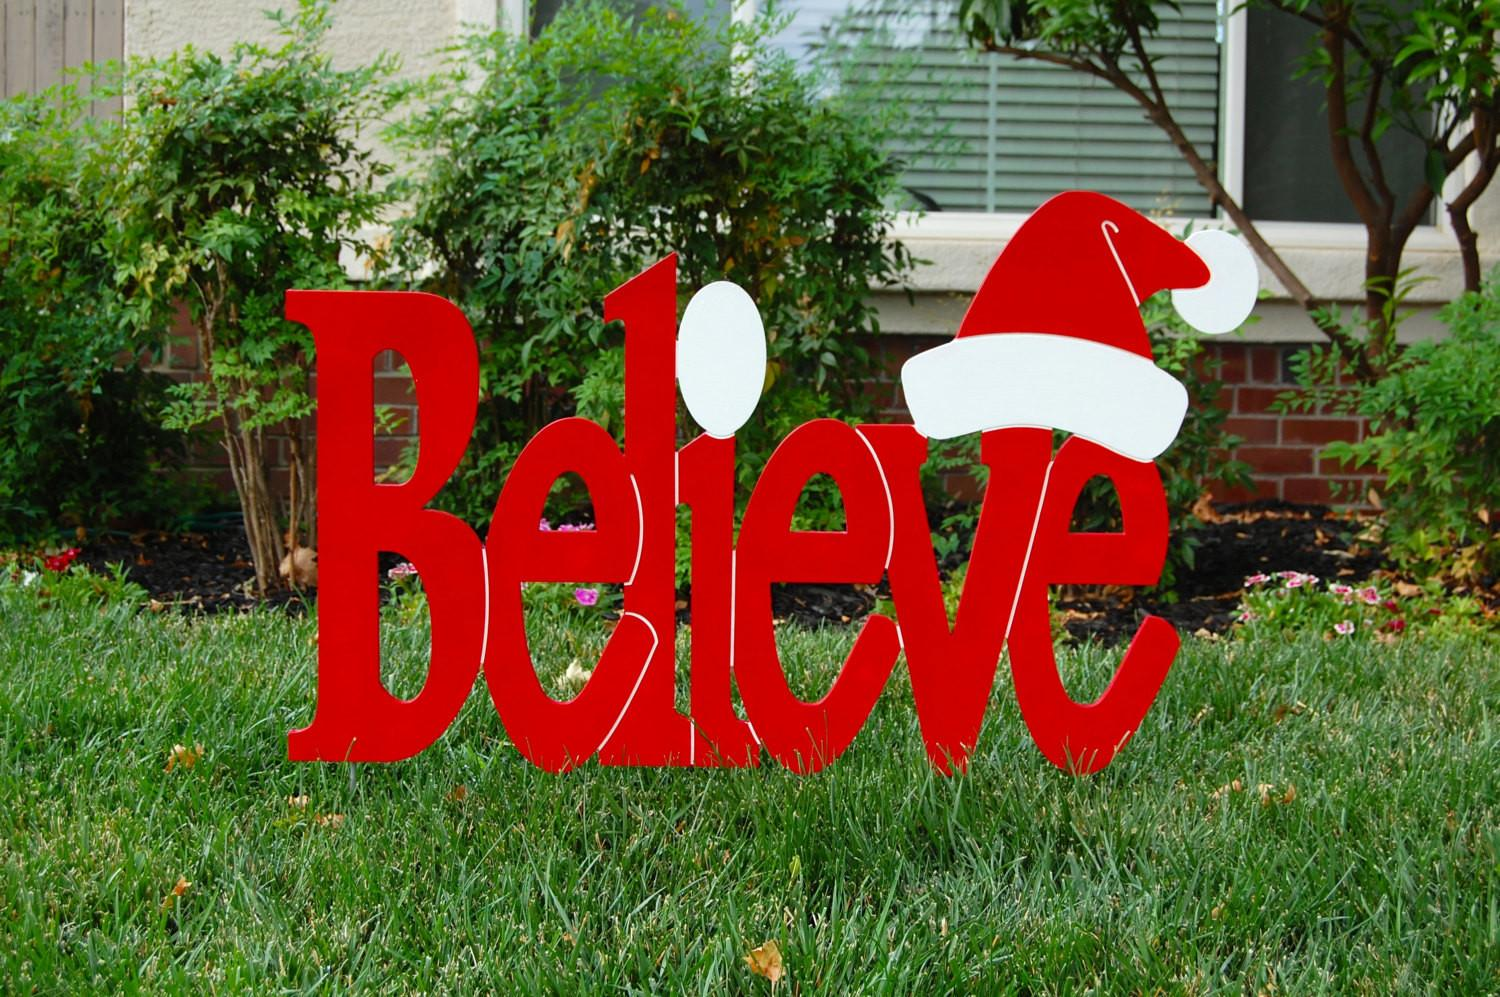 Believe Santa Red Outdoor Christmas Holiday Wood Lawn